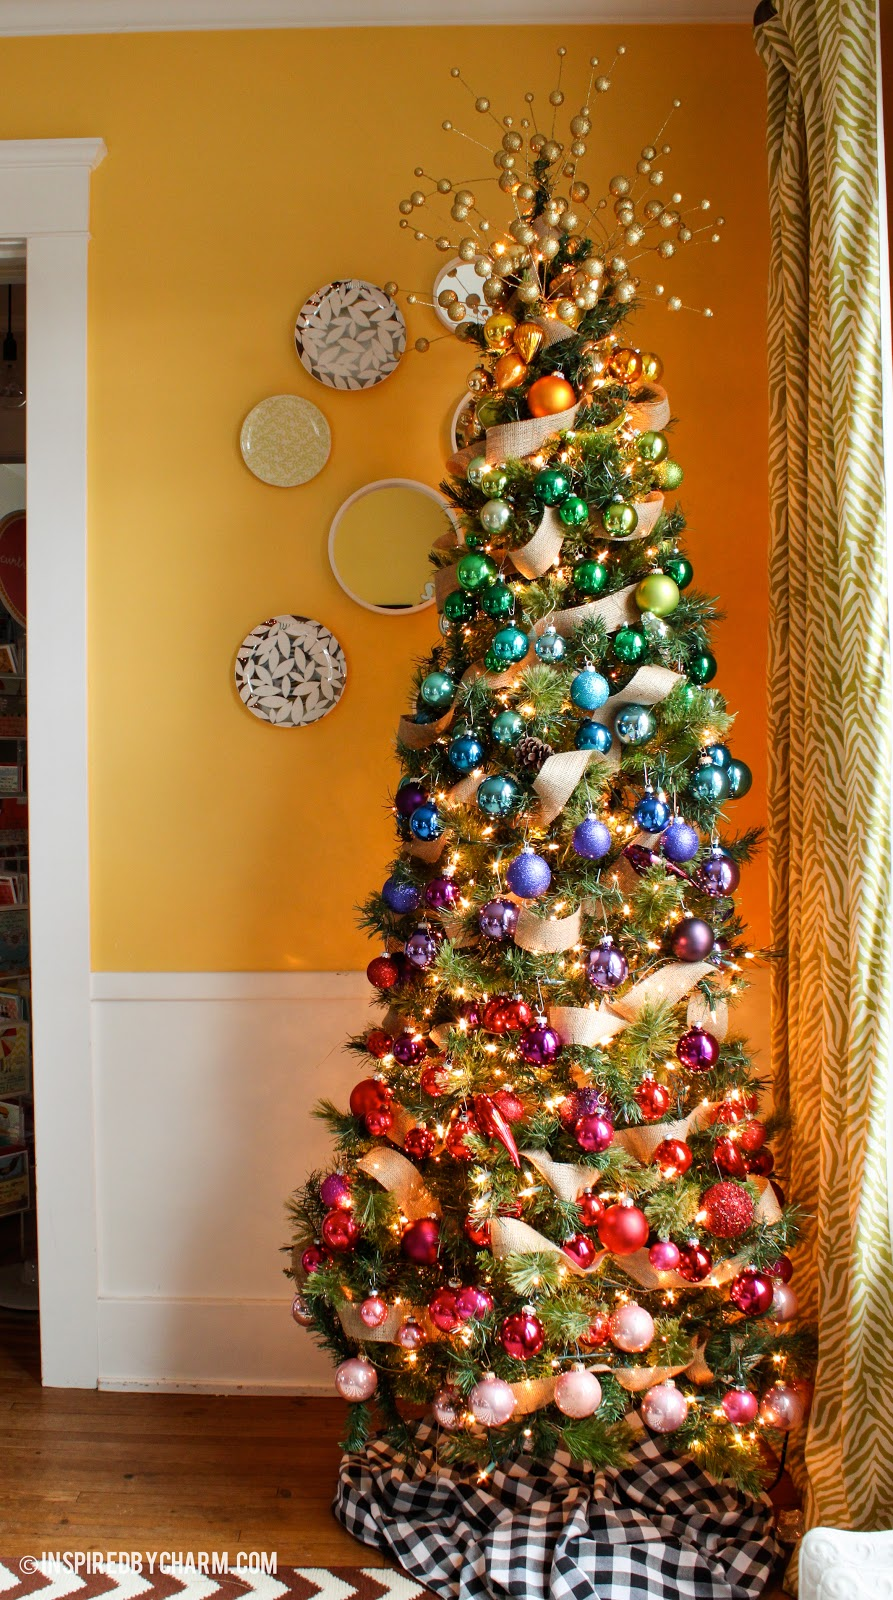 35 christmas tree decoration ideas pictures of beautiful christmas trees - Christmas Trees Decorated